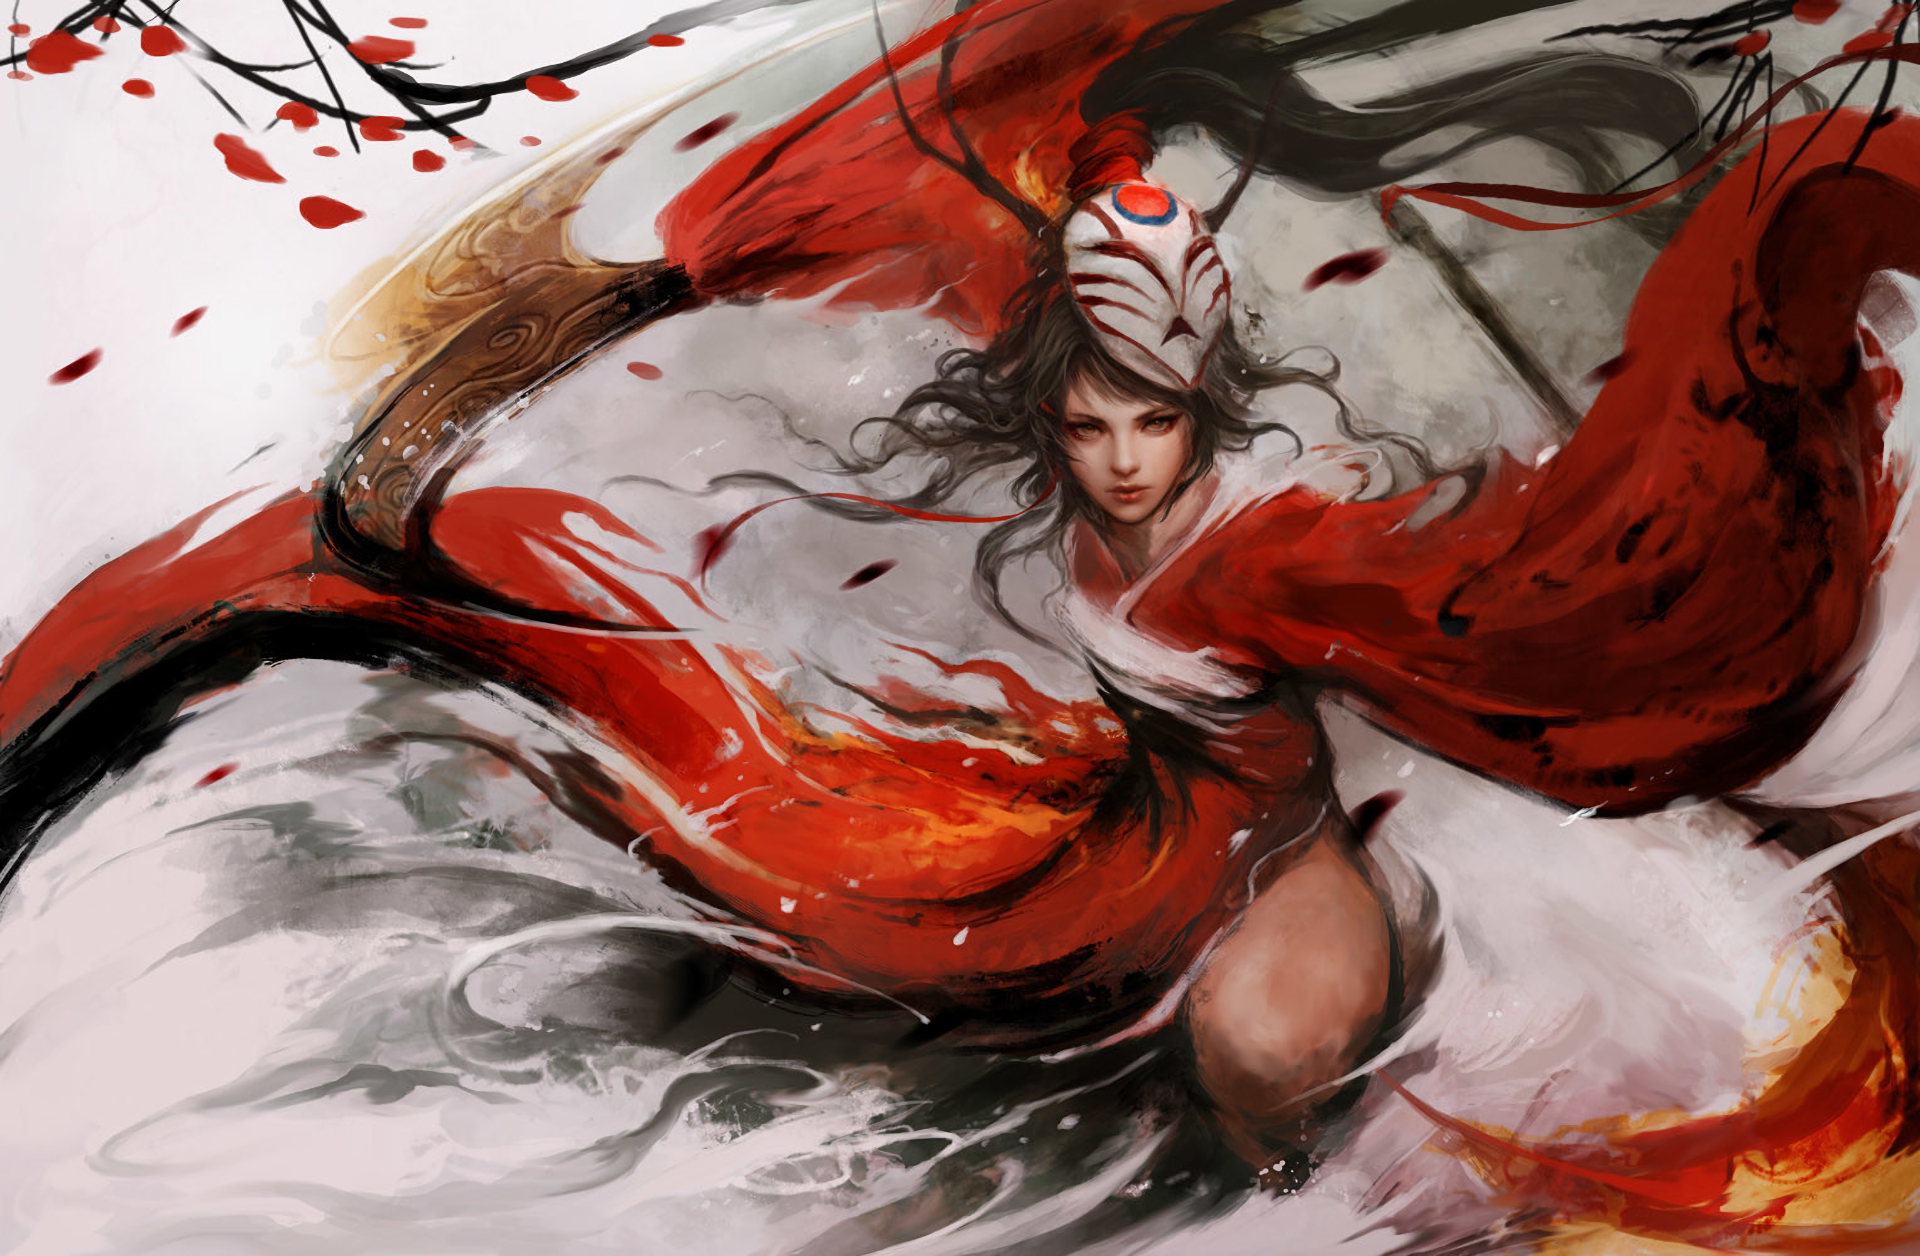 147 Akali League Of Legends Hd Wallpapers Background Images